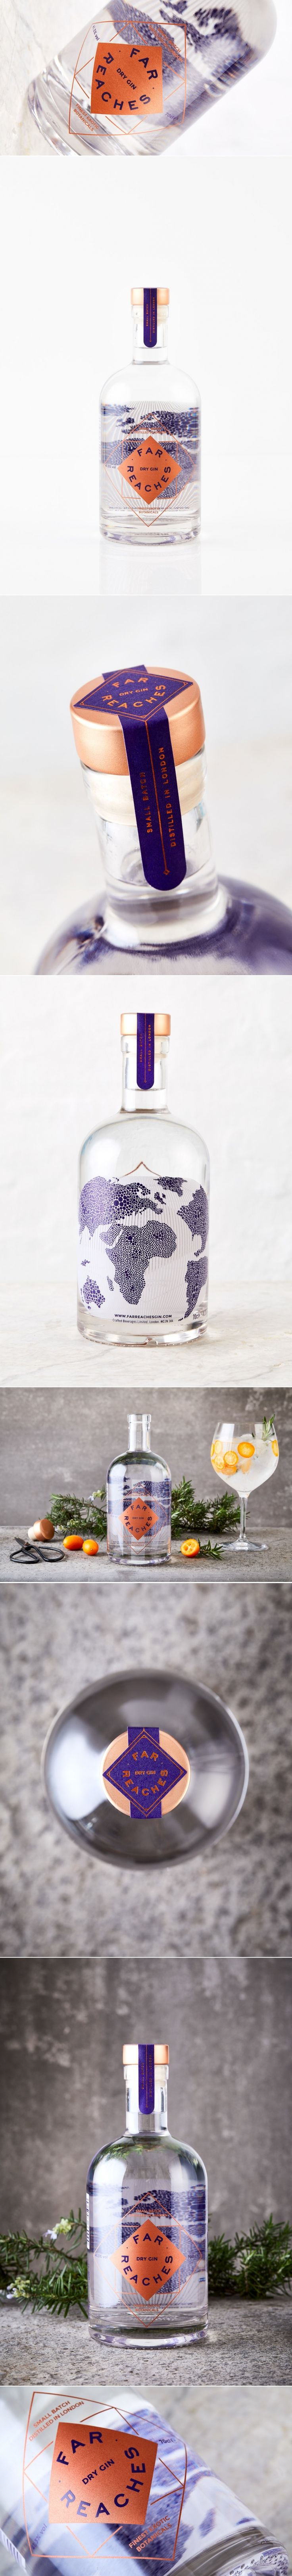 Go Places Near and Far with Far Reaches Gin — The Dieline | Packaging & Branding Design & Innovation News